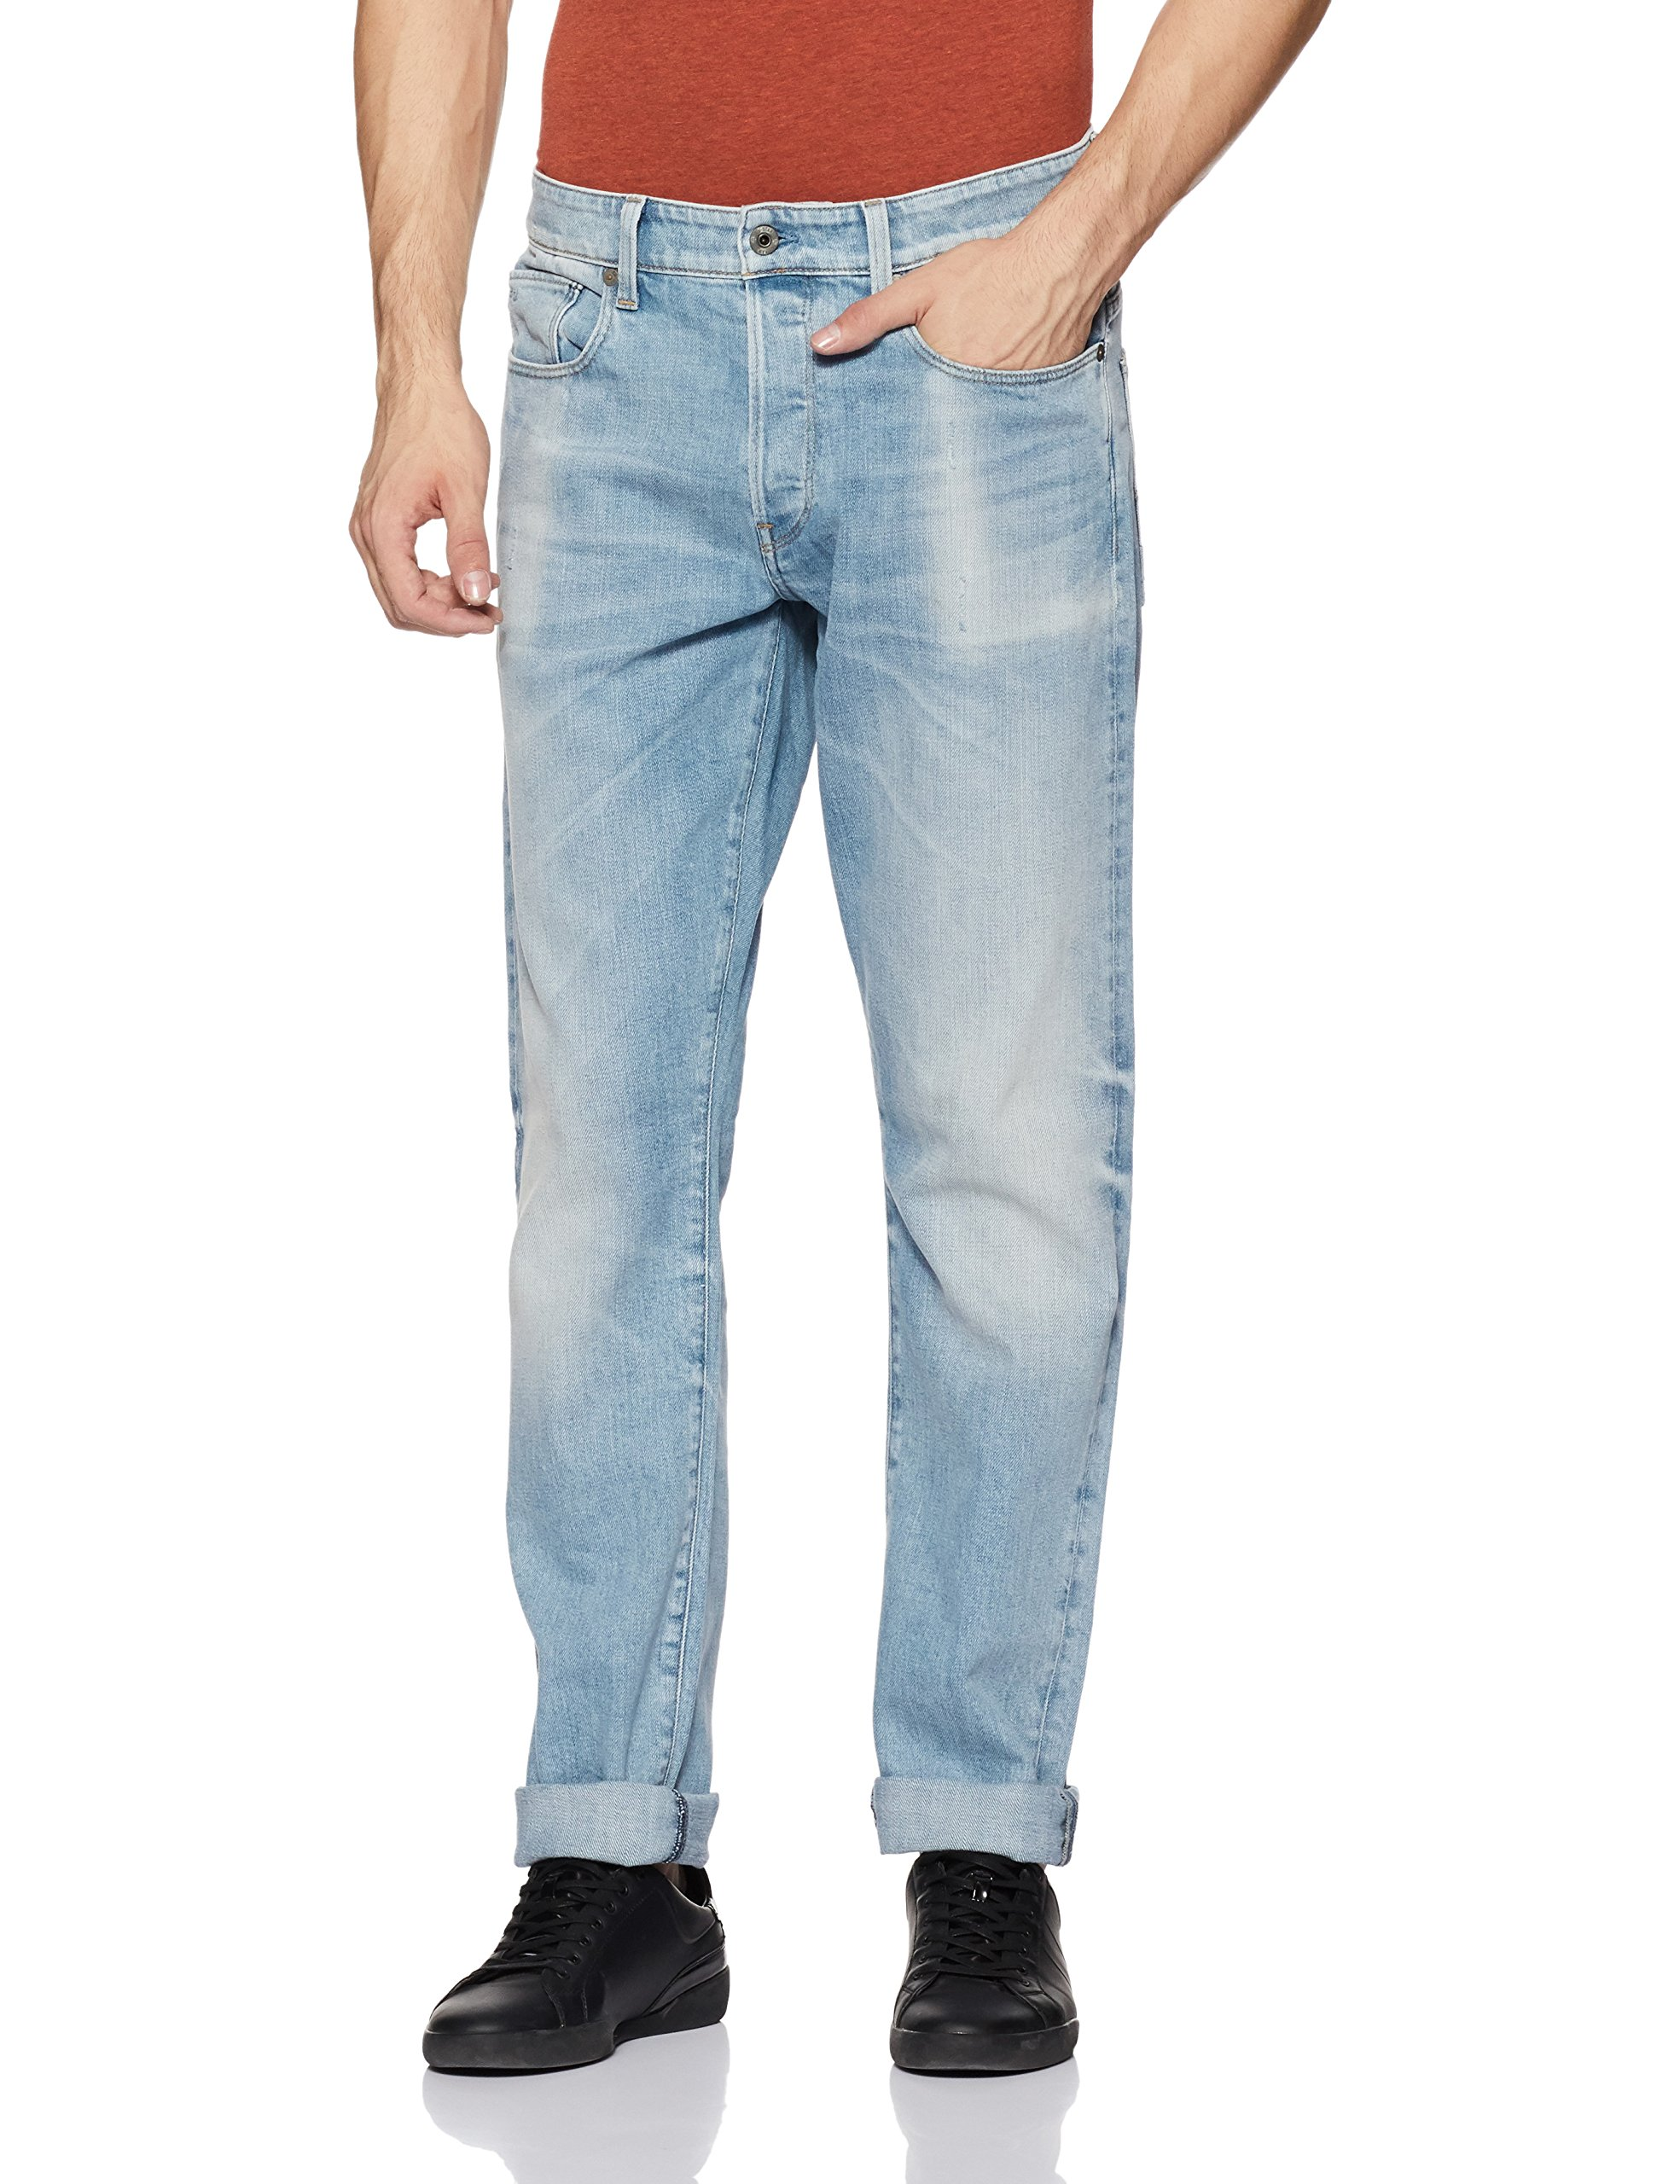 Raw 42429w32l star tapered Aged JeansBleult Homme 3301 G 6997 Nwnm80Ov